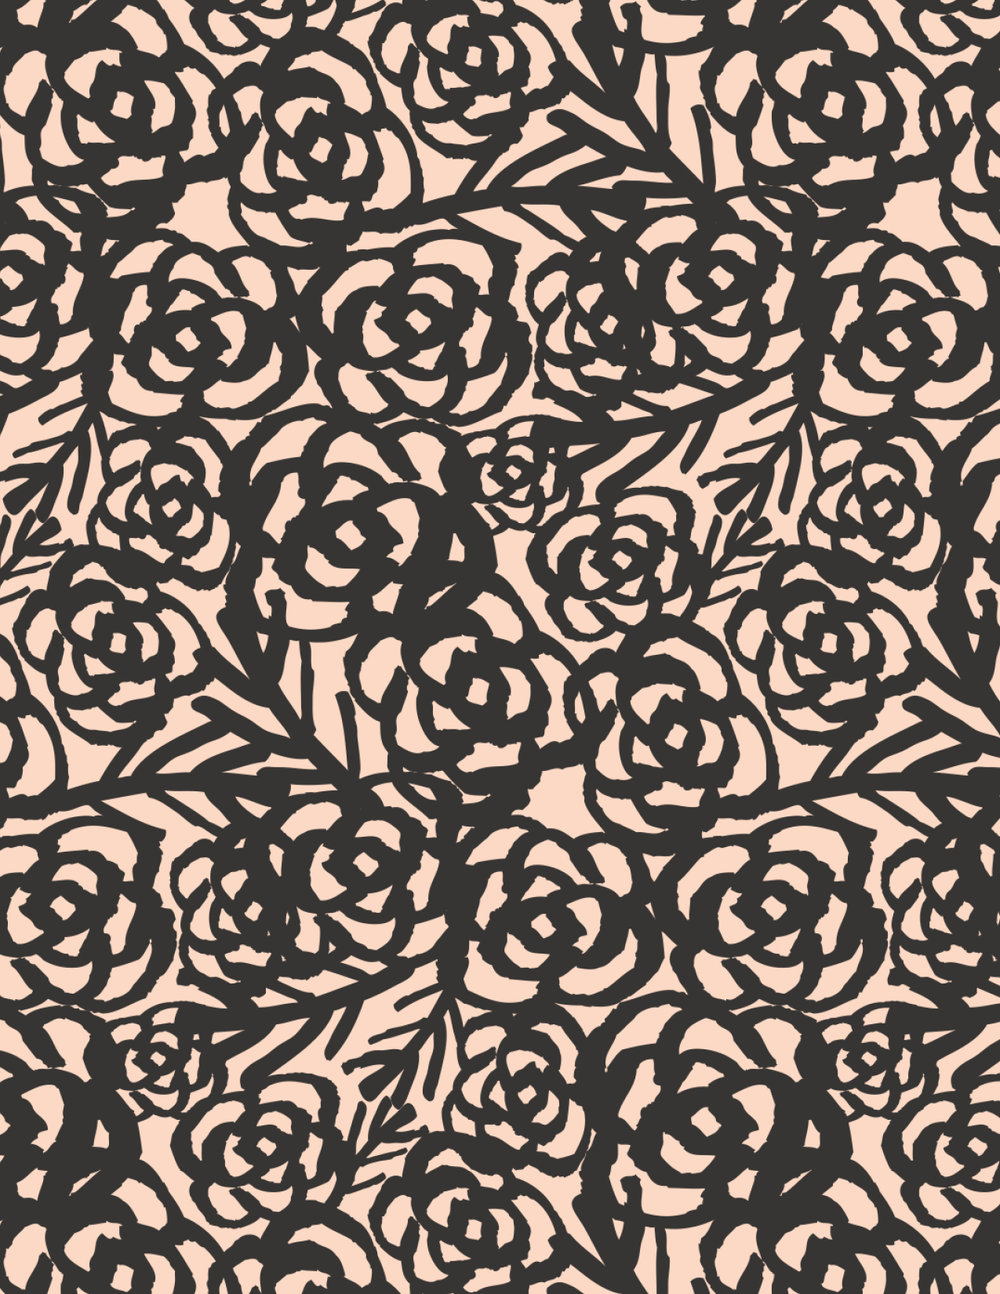 Jessbruggink_patterns_new11.jpg